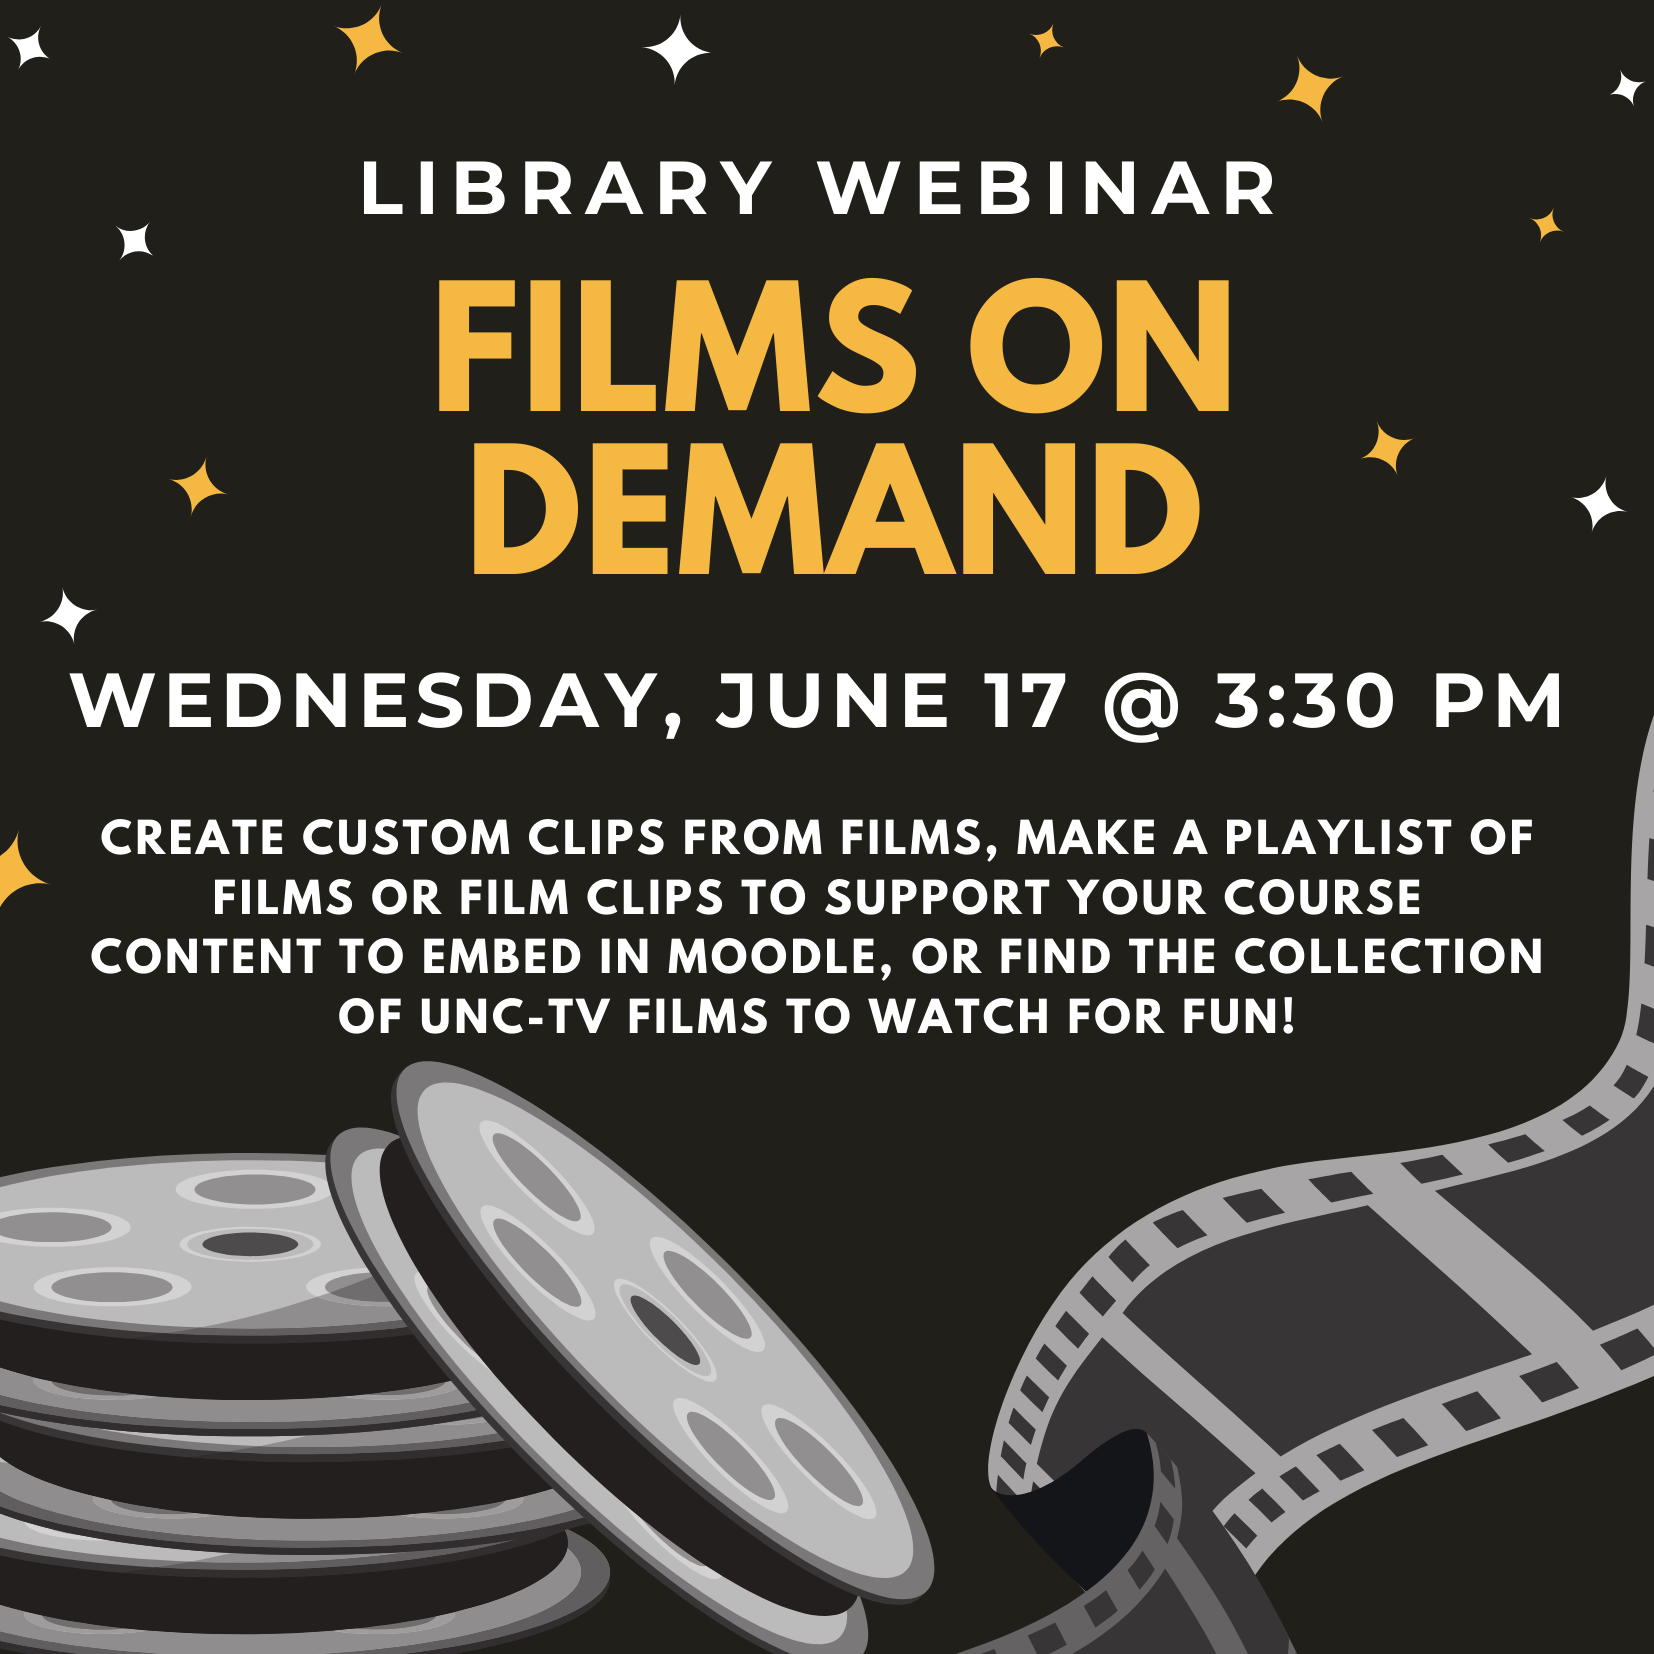 Moye Library, University of Mount Olive. Library Webinar: Films on Demand. Wednesday, June 17 at 3:30pm.